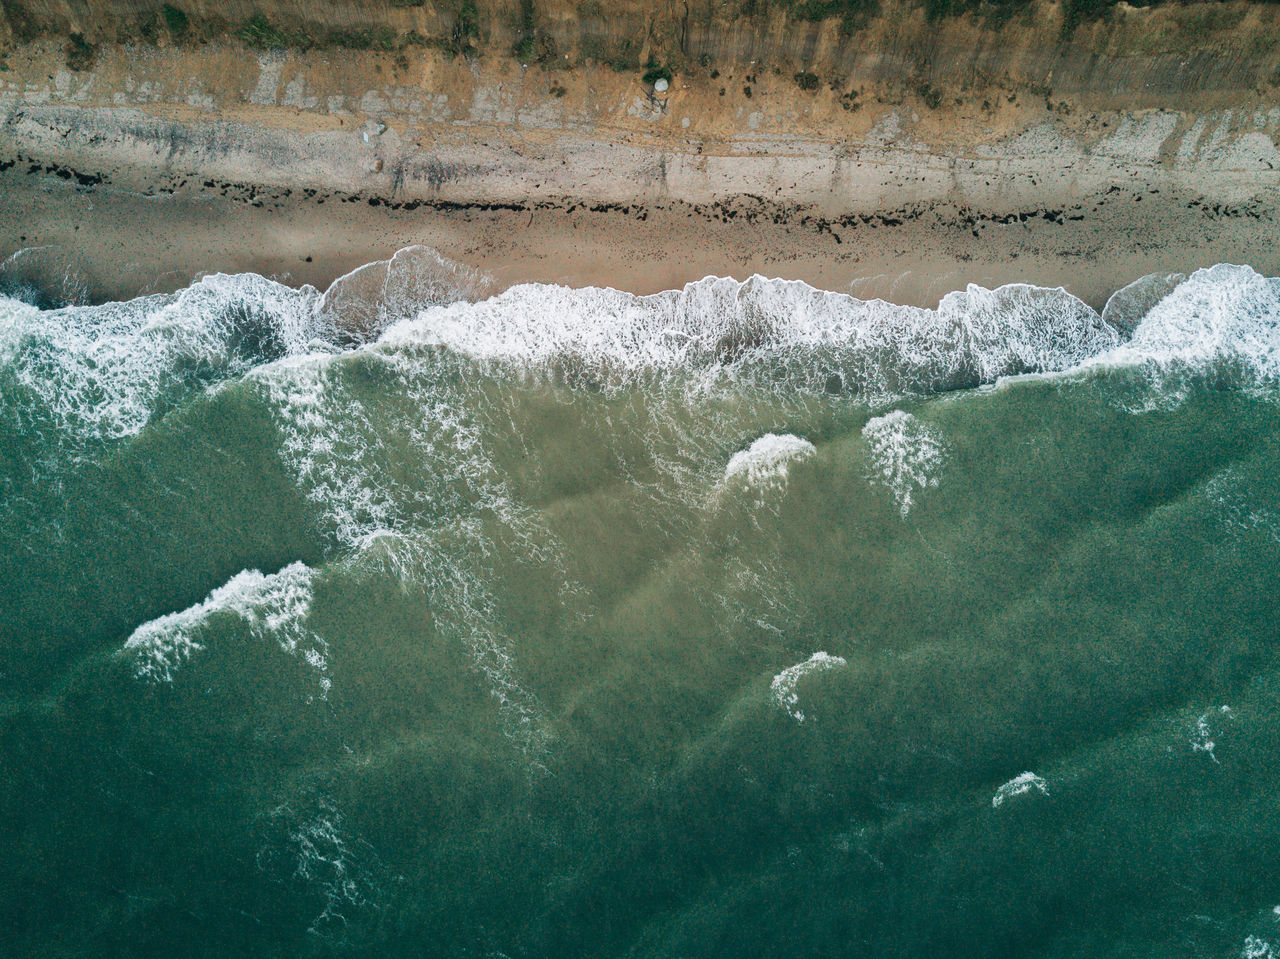 Aerial image of beach and water with waves and surfer Beauty In Nature Day Motion Nature No People Outdoors Power In Nature Water Waterfall Waterfront Wave